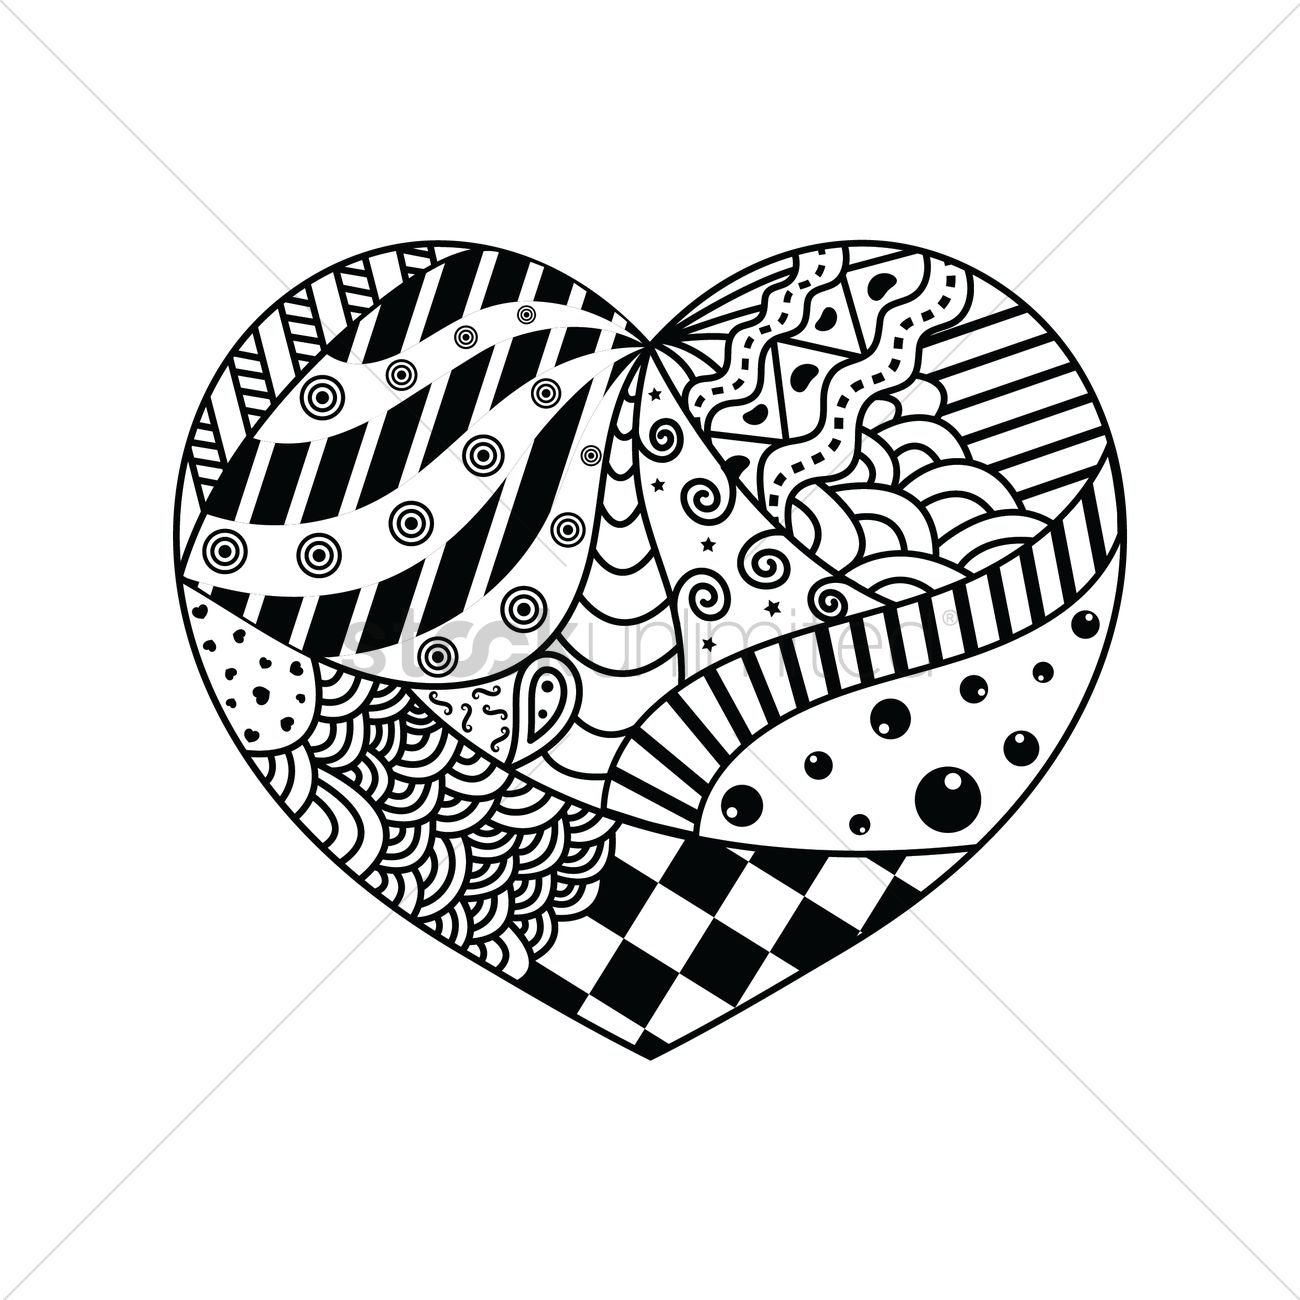 1300x1300 Decorative Heart Design Vector Image